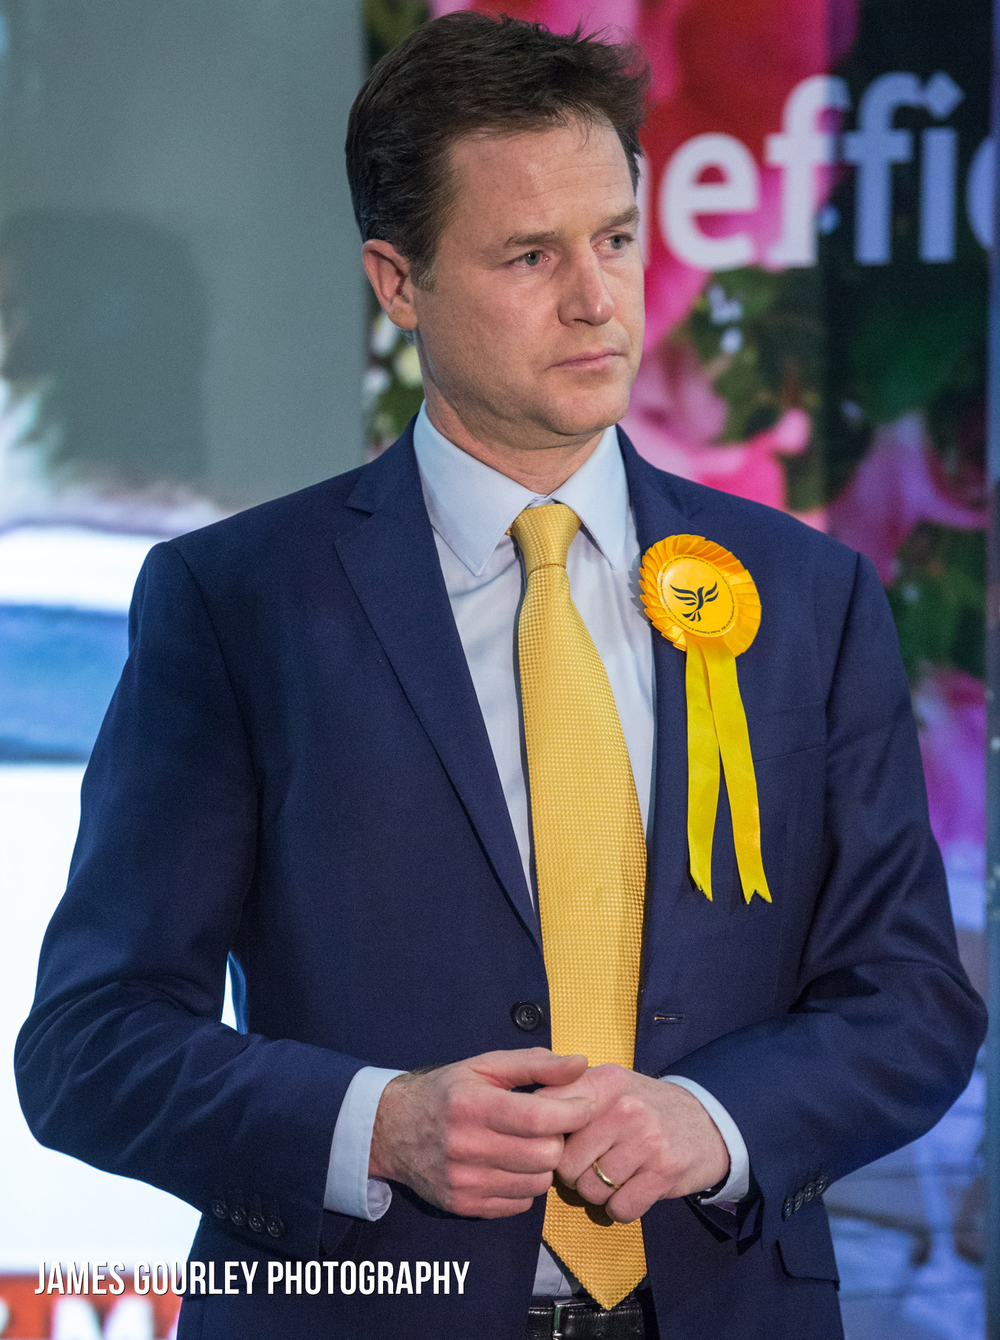 The Liberal Democrat Leader Nick Clegg at the declaration of the Sheffield Hallam constituency. Clegg won the seat with a 4% lead over Oliver Coppard of Labour